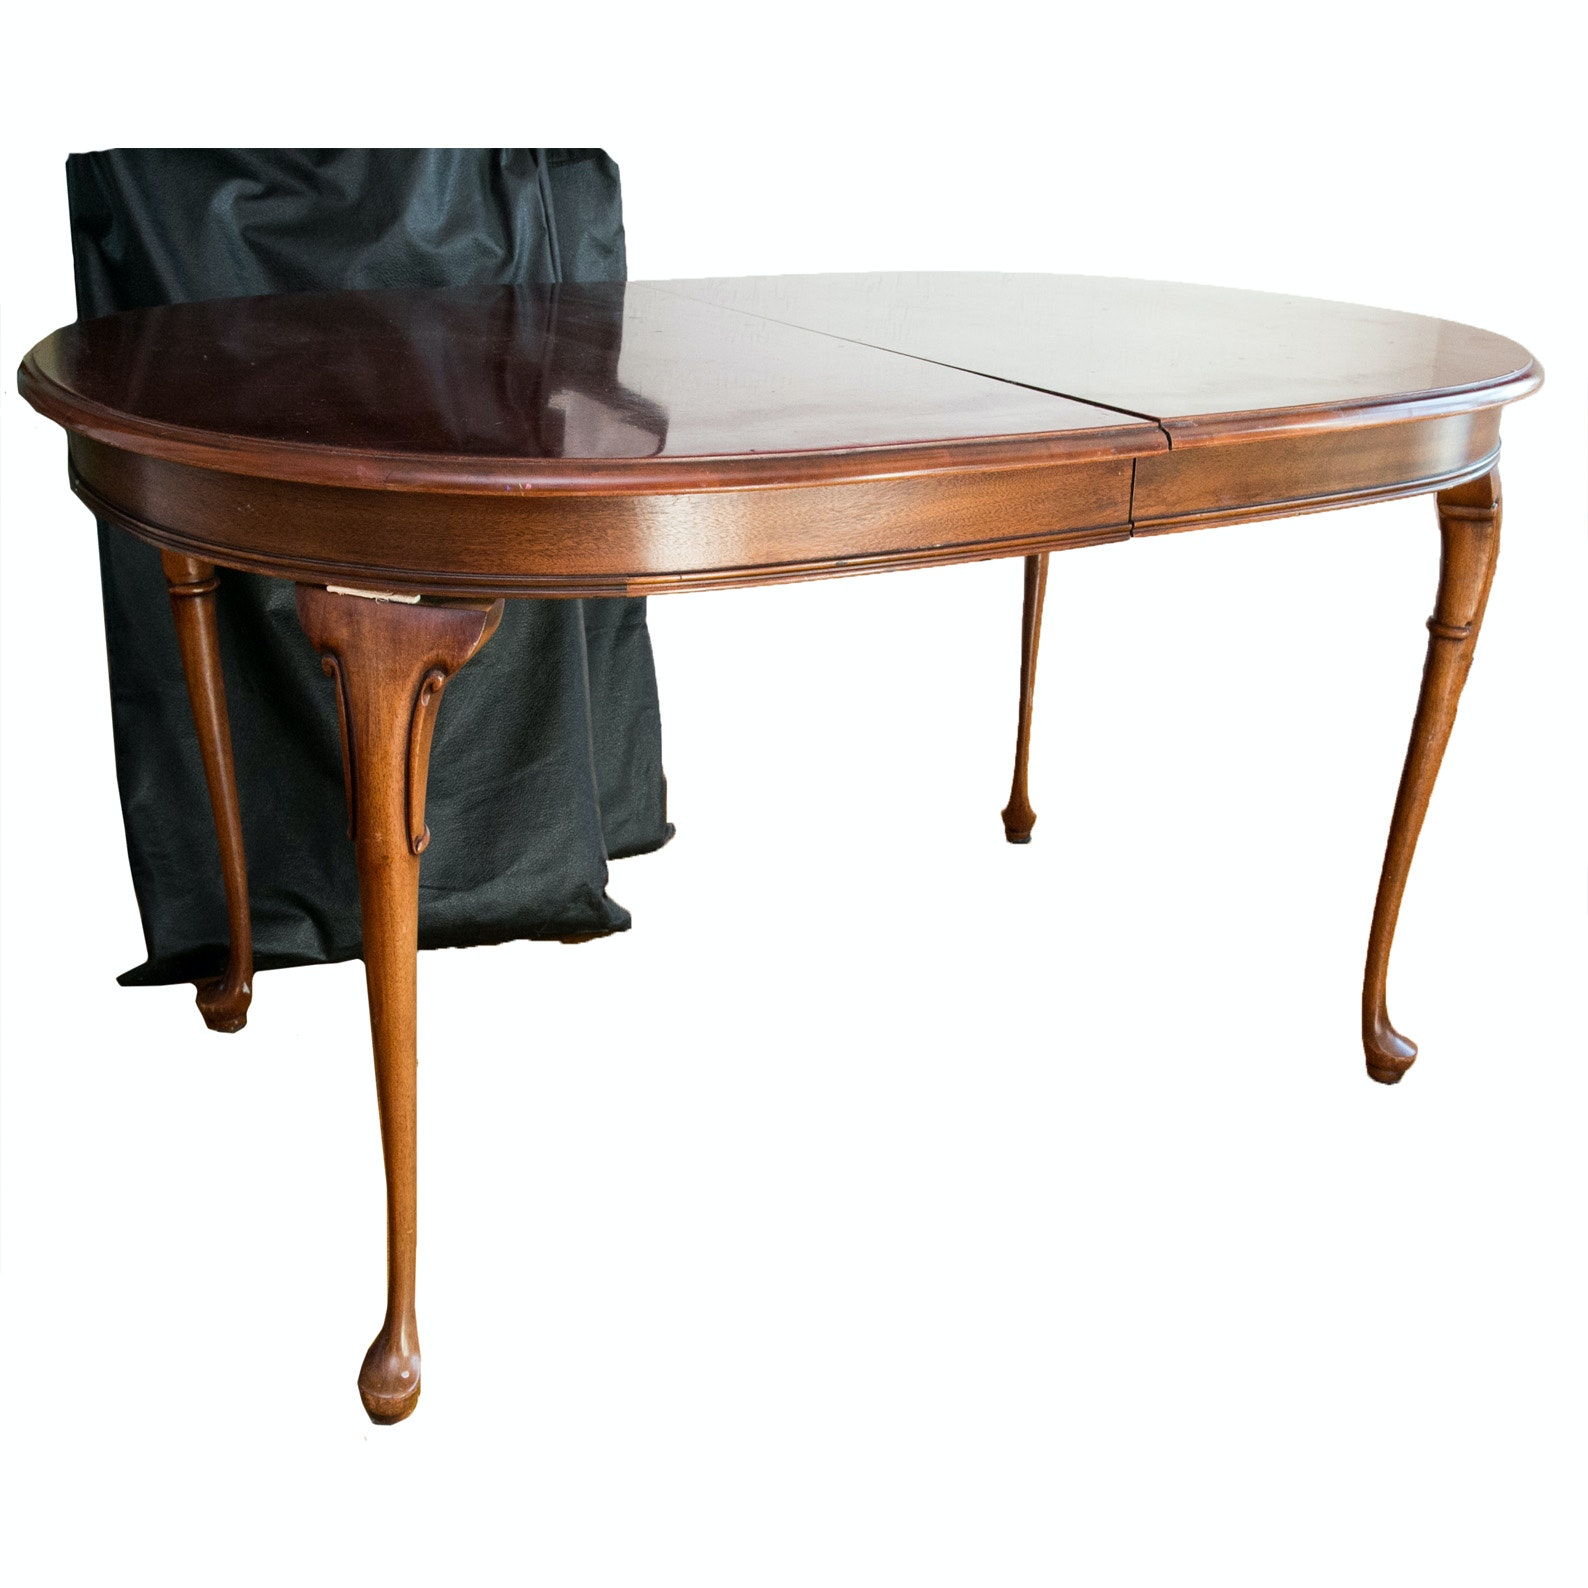 Queen Anne Style Dining Table with Extension